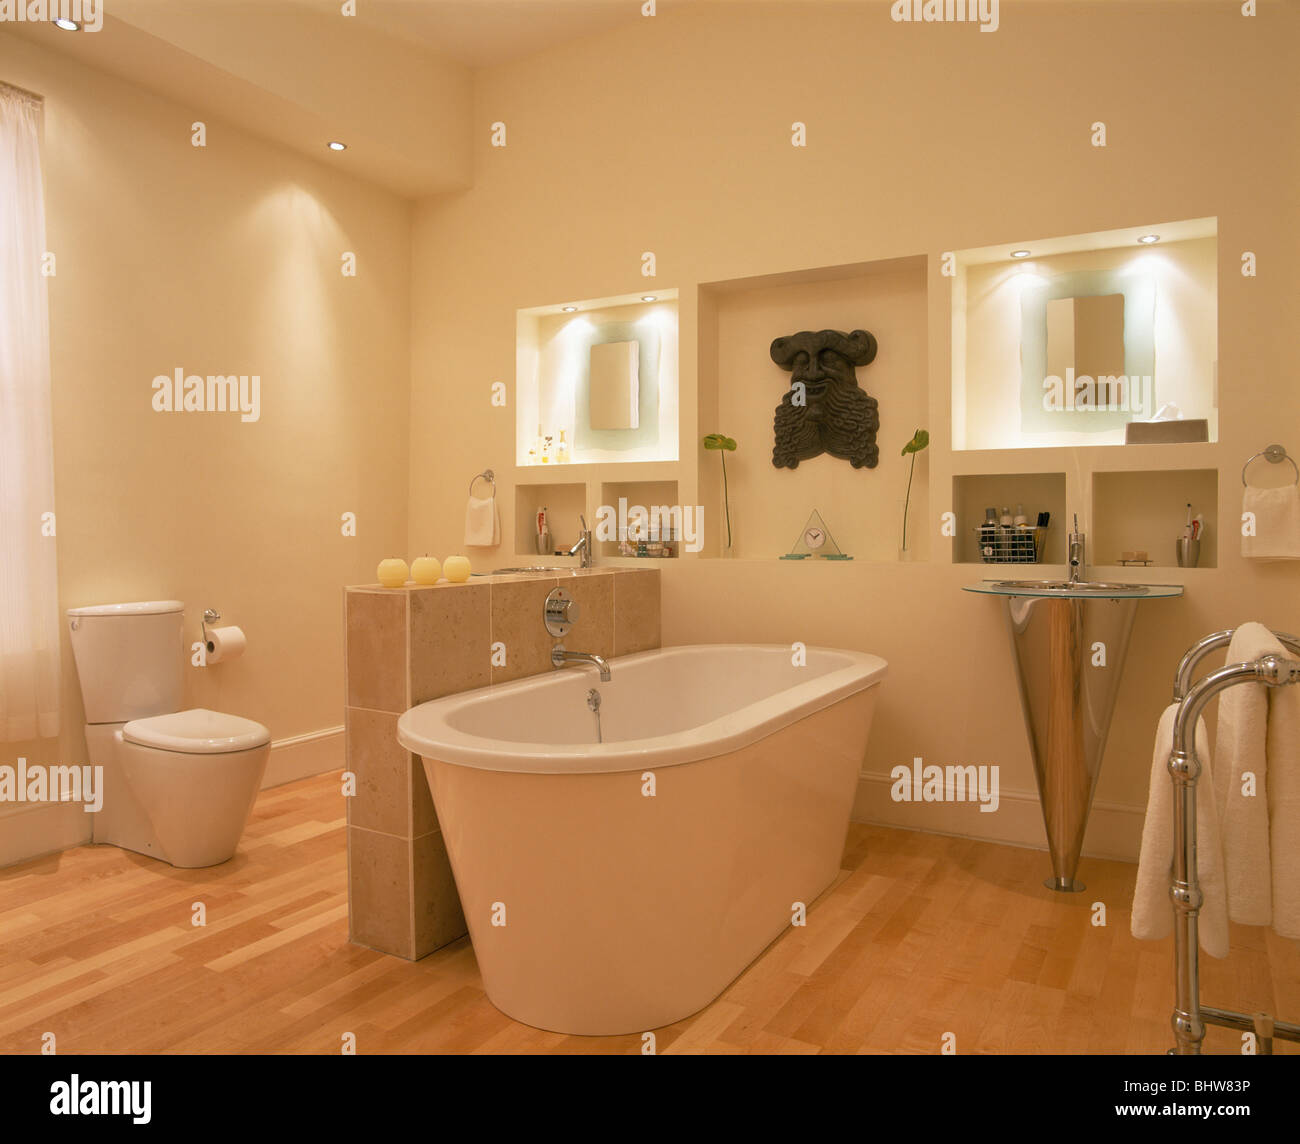 Freestanding bath against low tiled iding wall in modern white bathroom with down-lighting and alcove shelving & Freestanding bath against low tiled iding wall in modern white ...